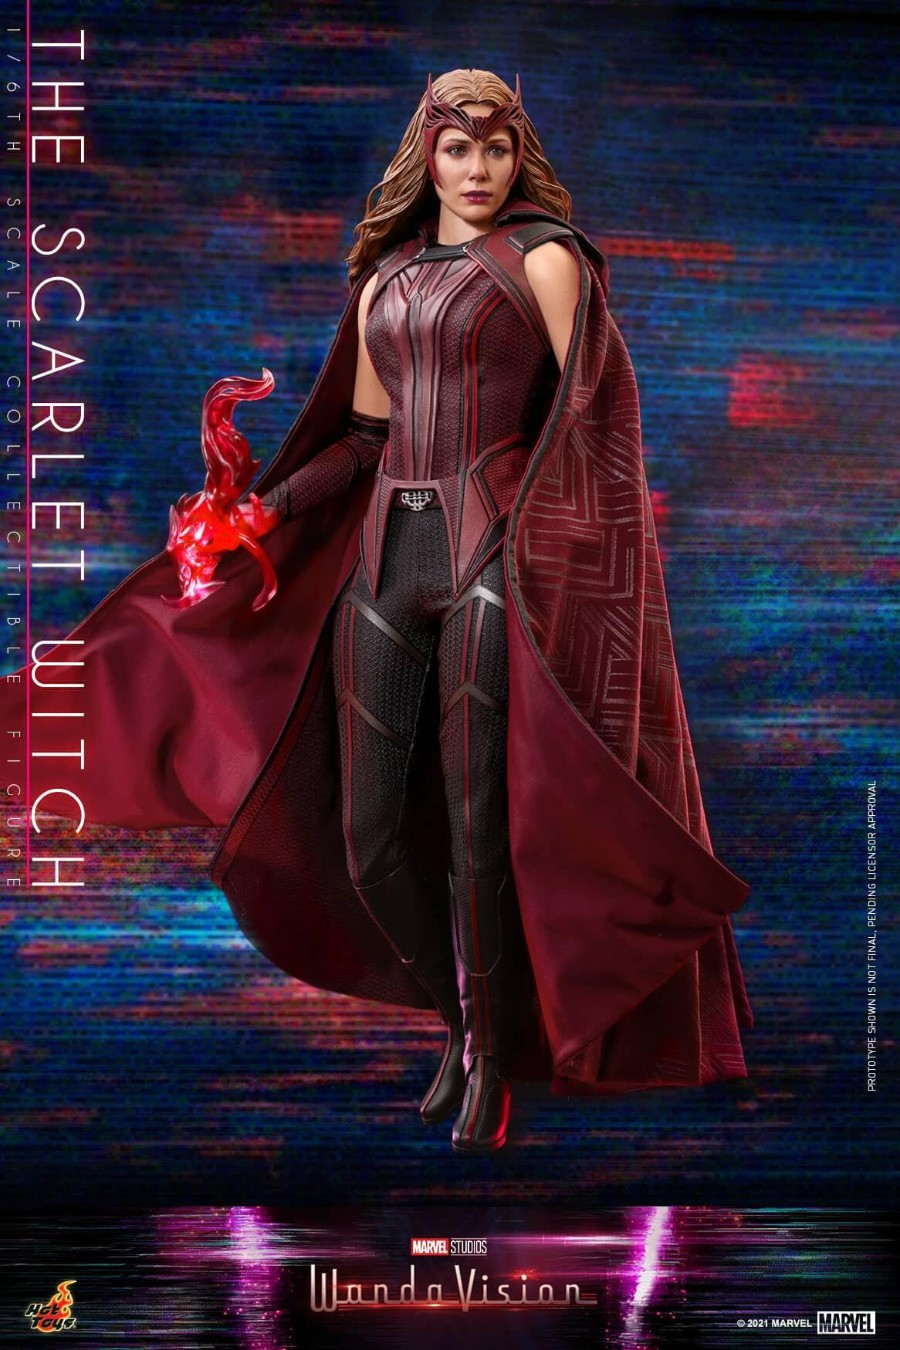 Hot Toys Scarlet Witch figurine shows Wanda Maximoff from WandaVision using Chaos Magic.